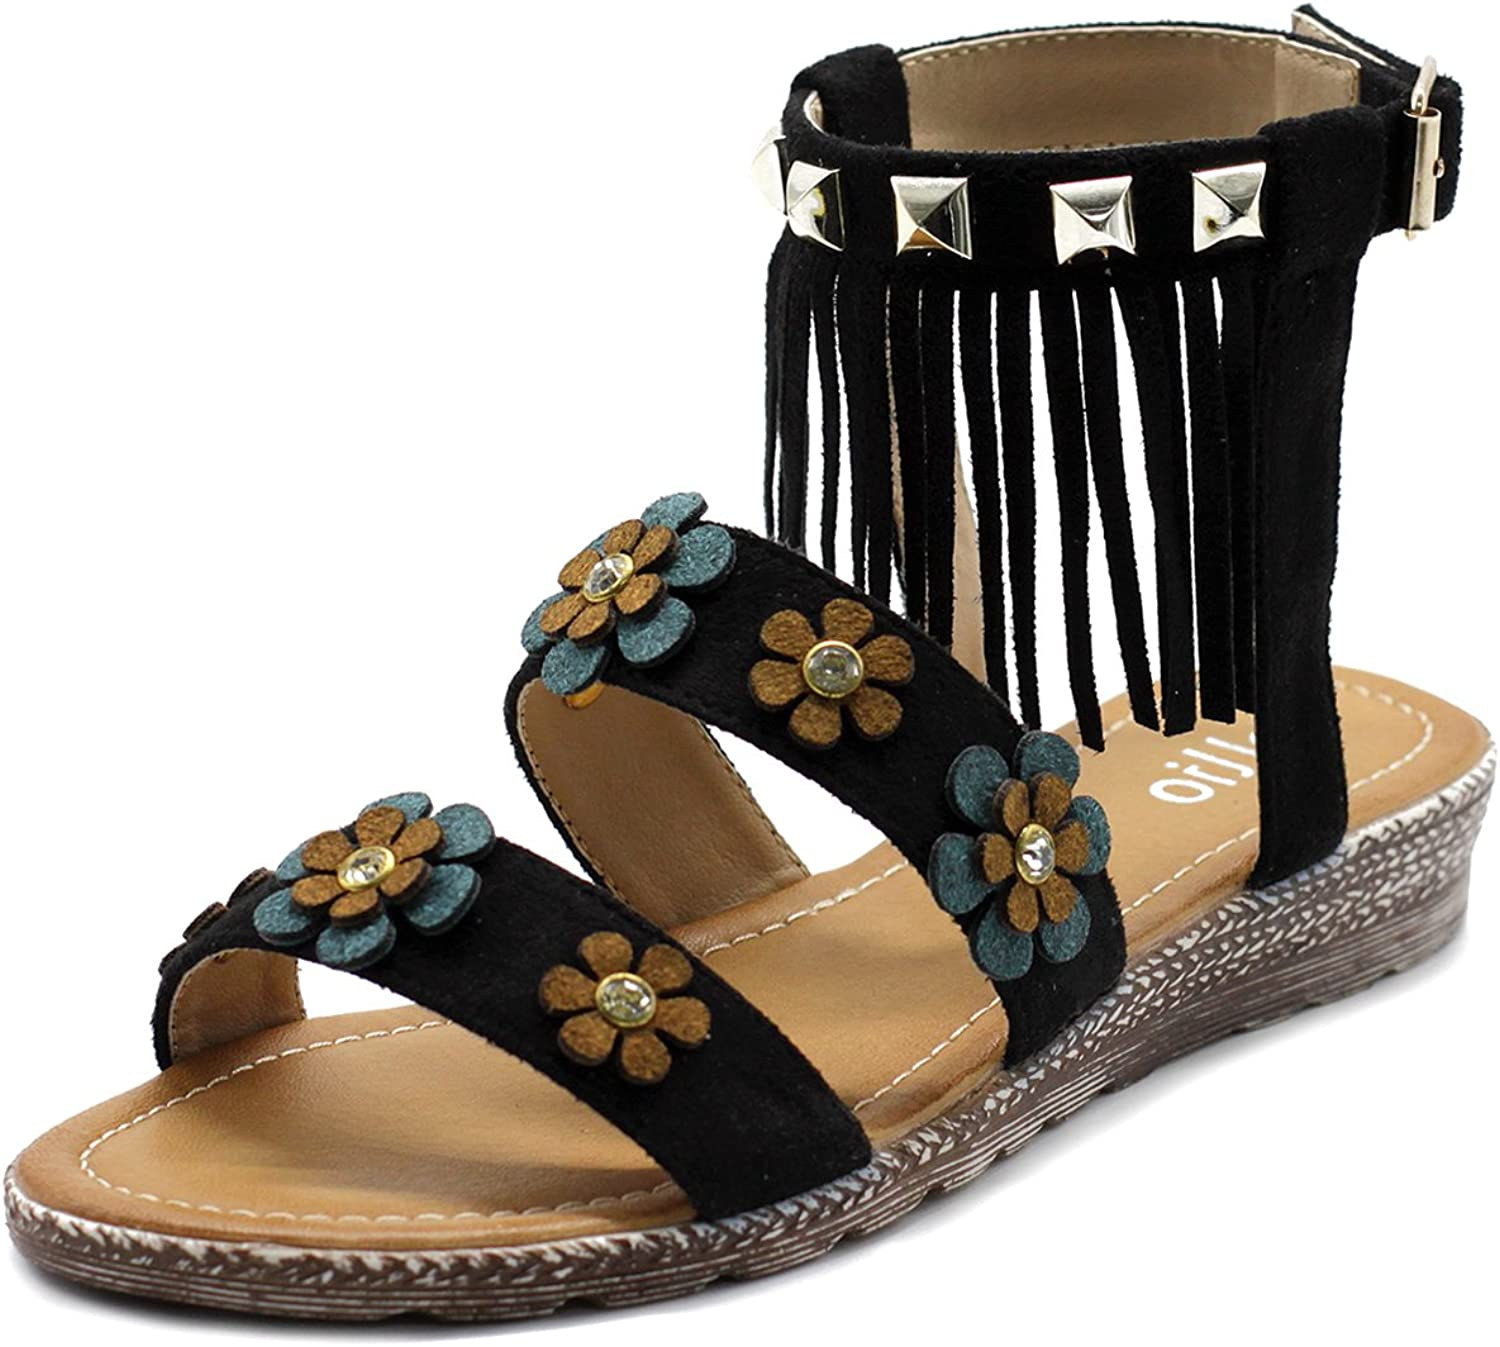 Ollio Womens shoes Floral Ankle Fringe Strap Flat Sandal BN08(8.5 B(M) US, Black)